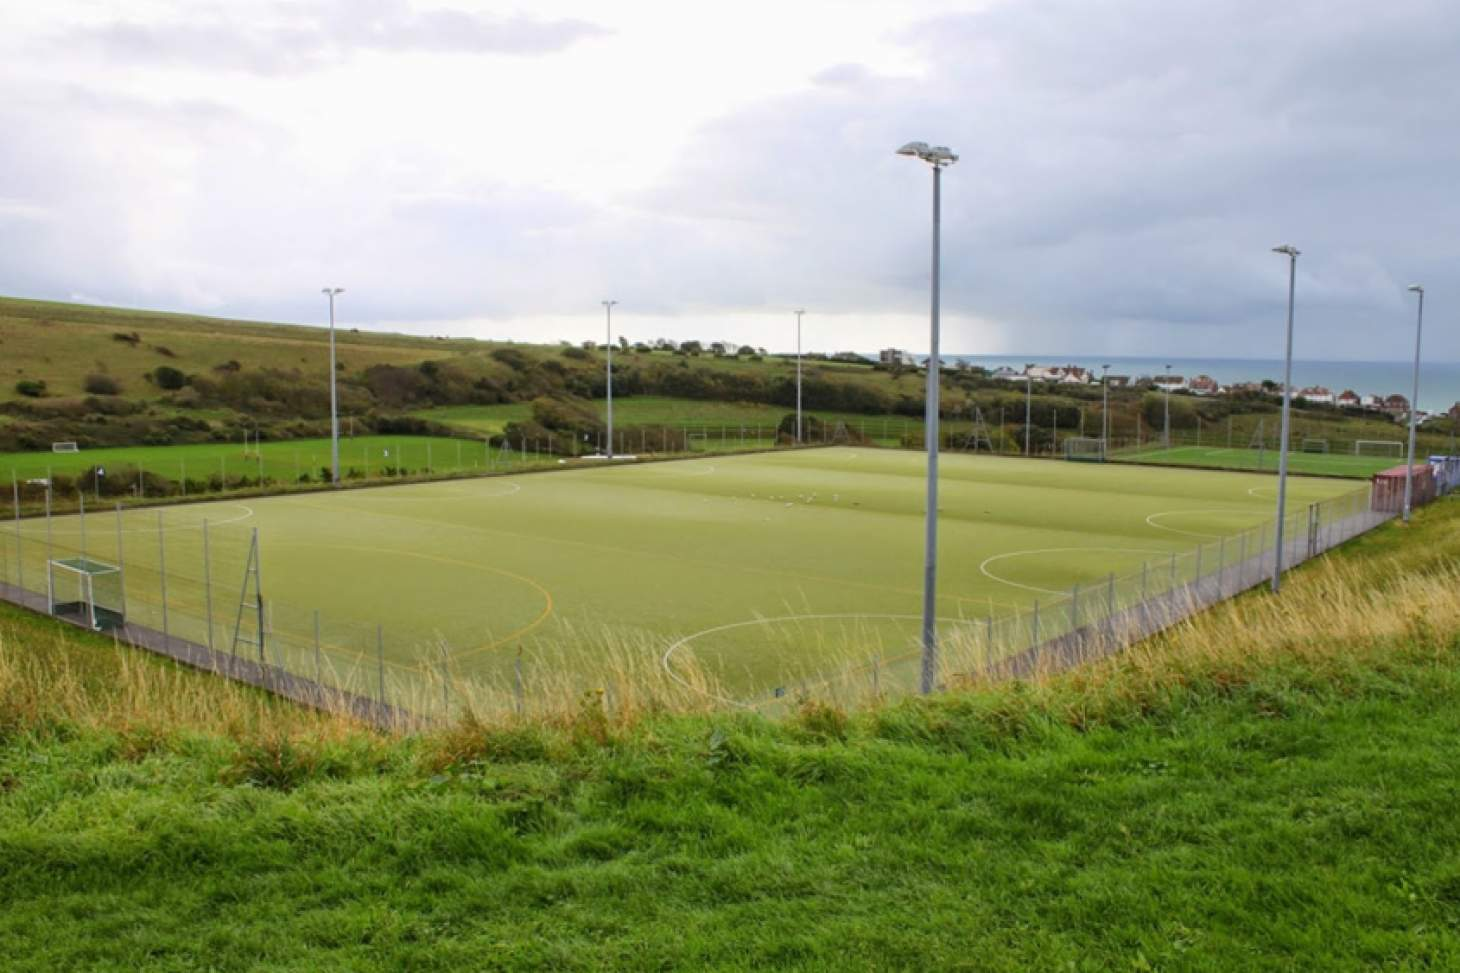 Stanley Deason Leisure Centre 11 a side | Astroturf football pitch